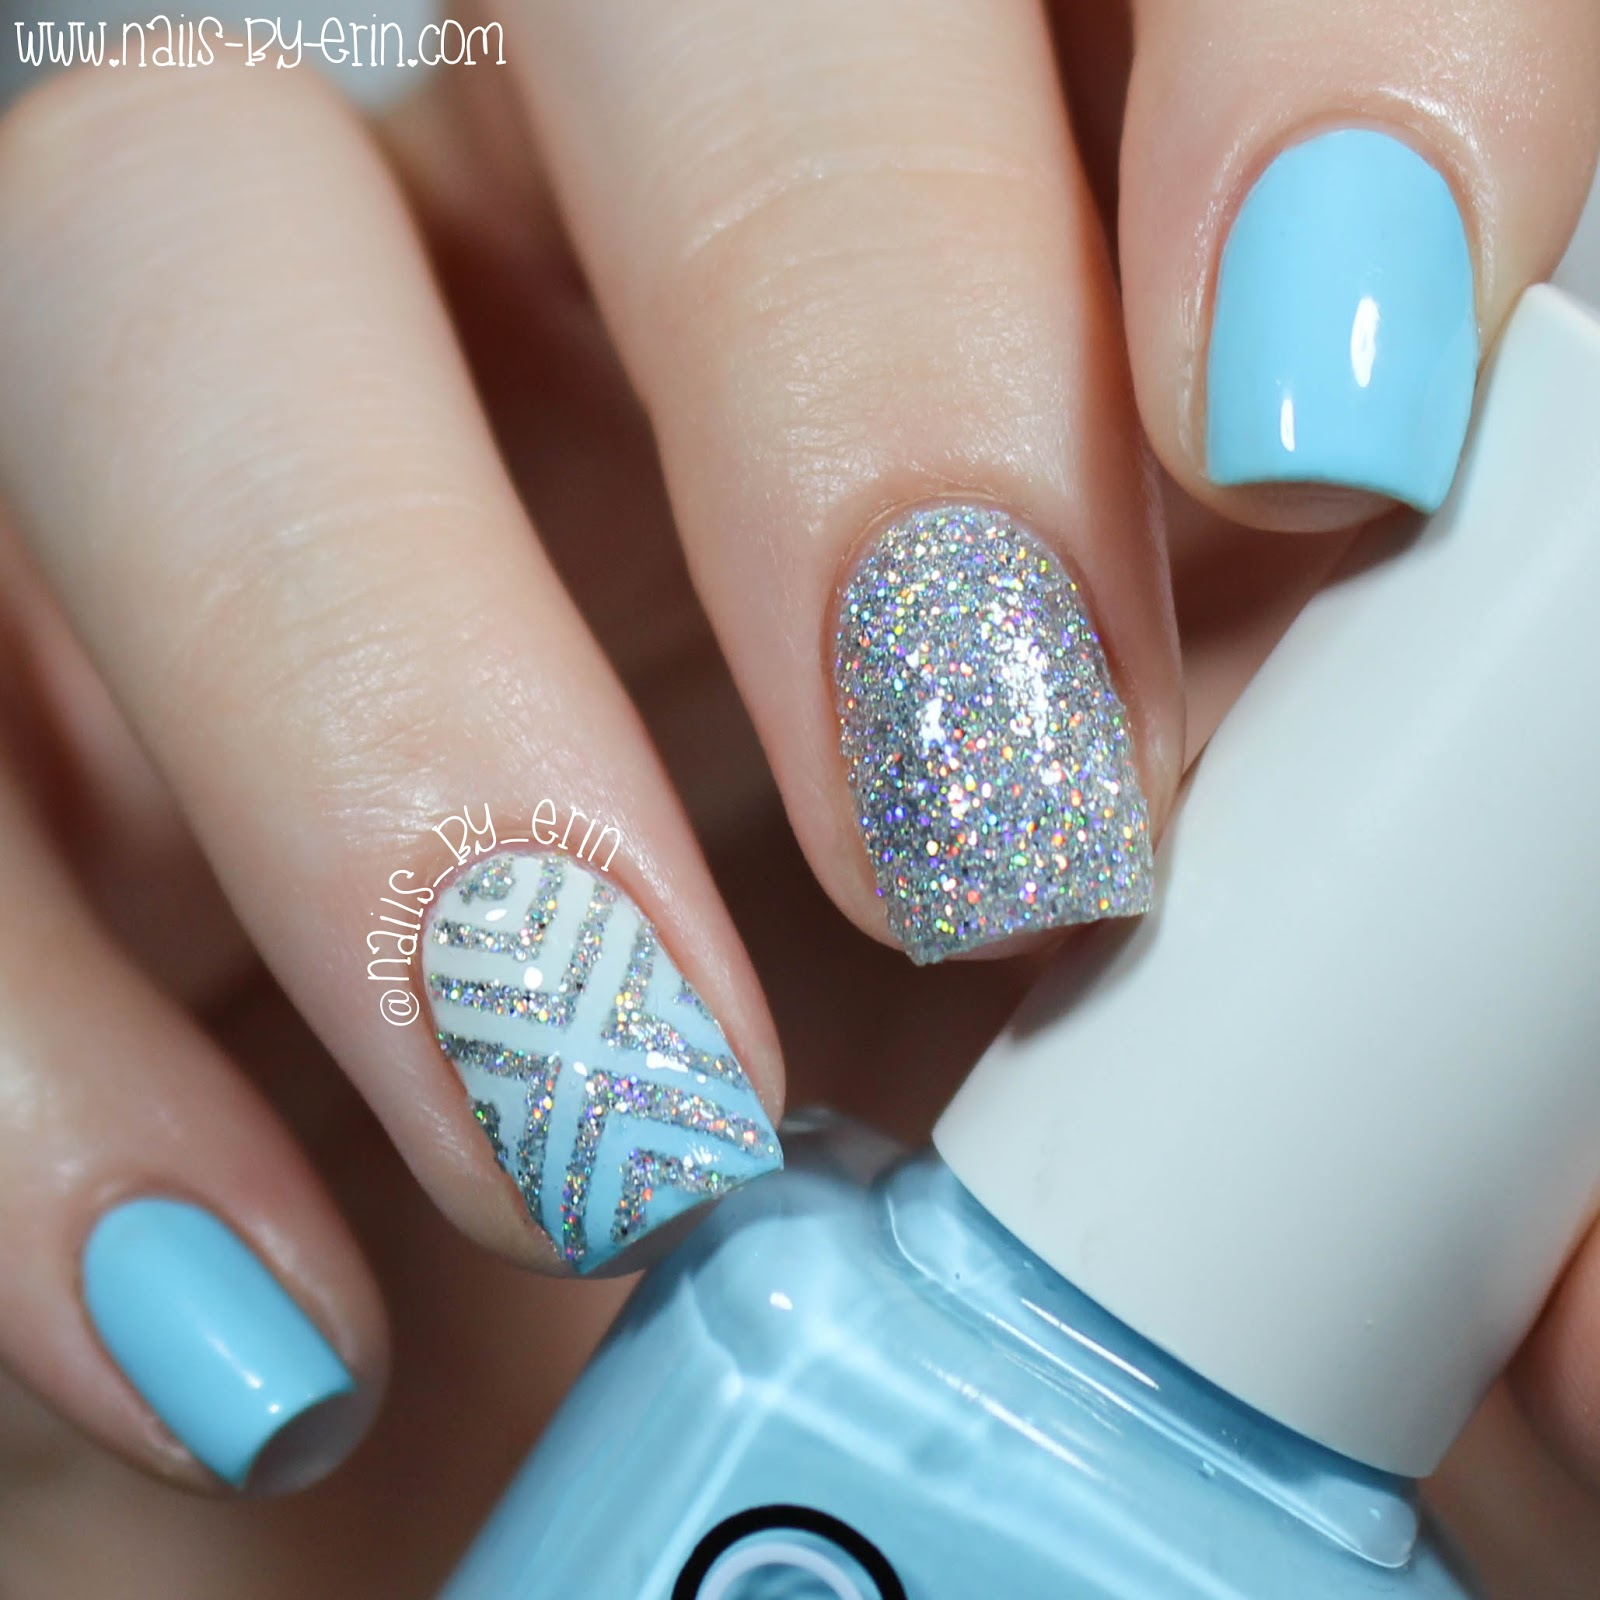 NailsByErin: Blue and Silver Glitter X Nails